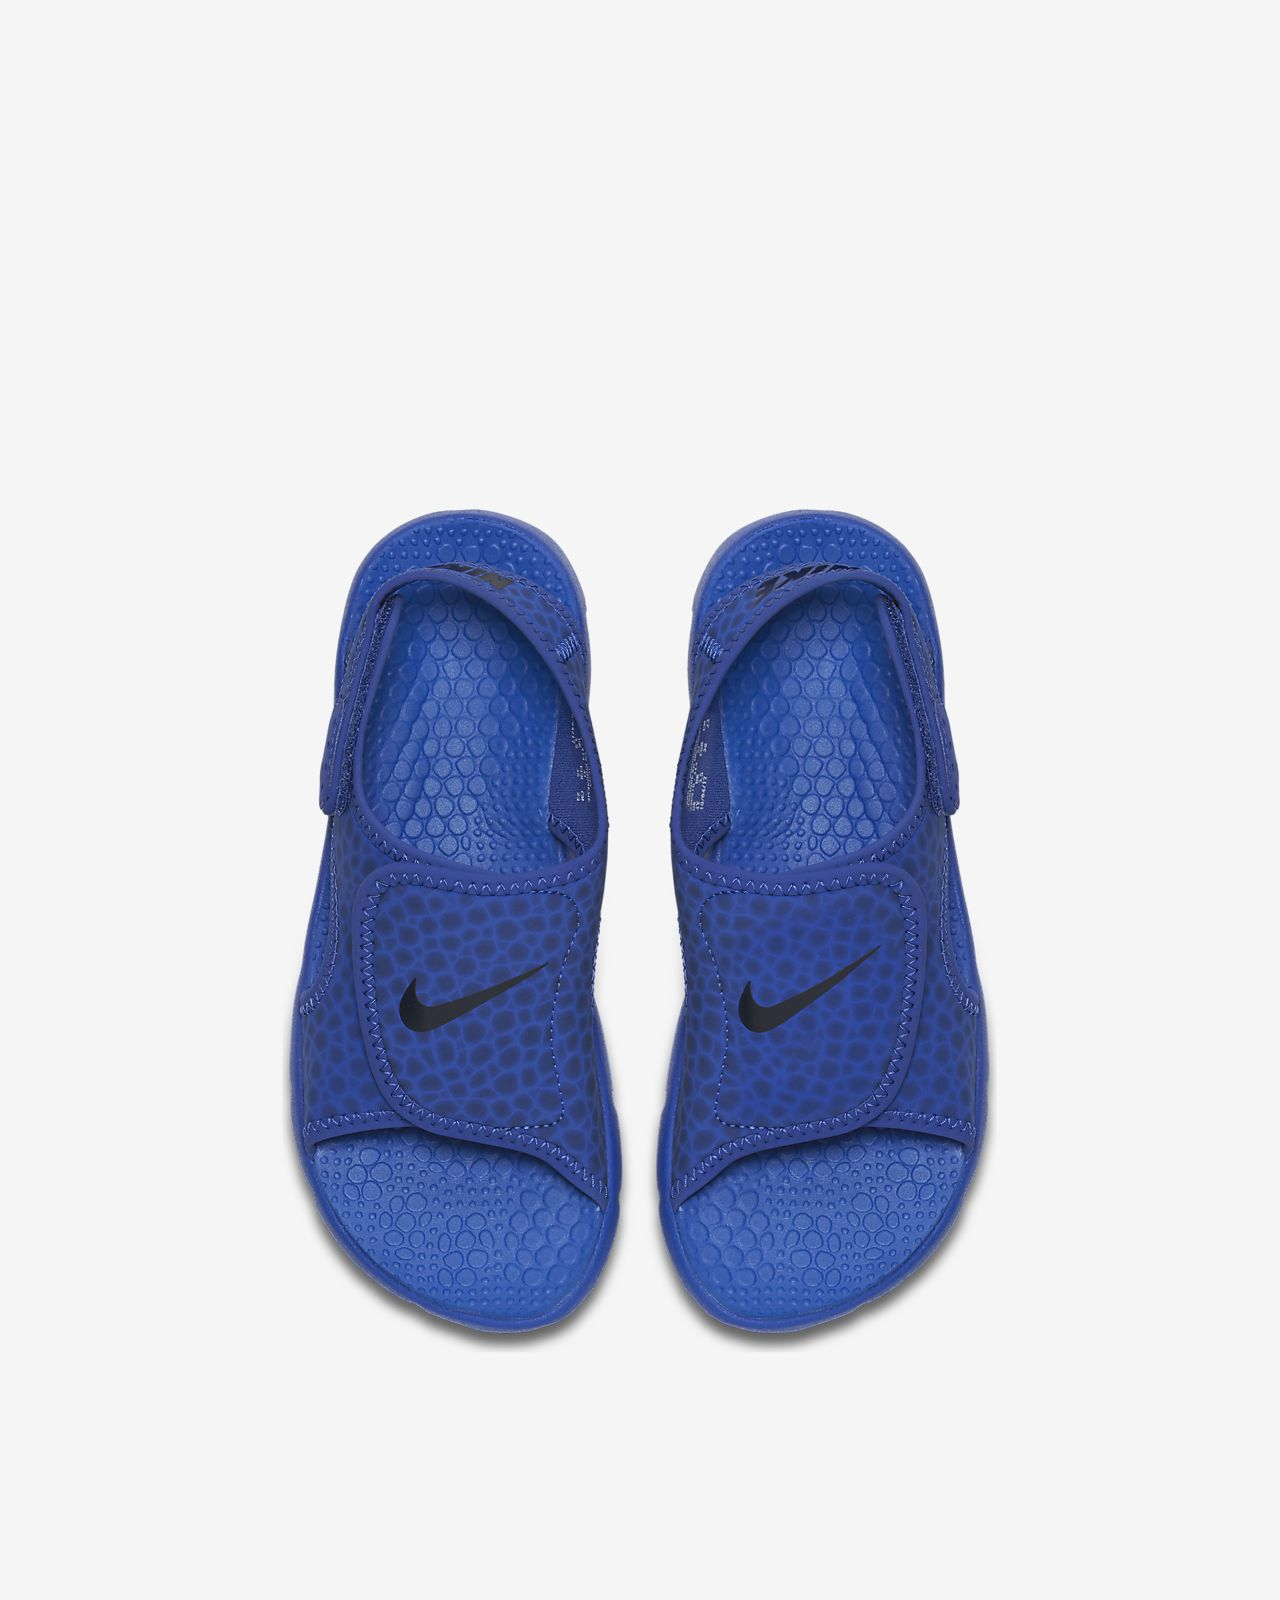 92175a255 Nike Sunray Adjust 4 Younger/Older Kids' Sandal. Nike.com SG